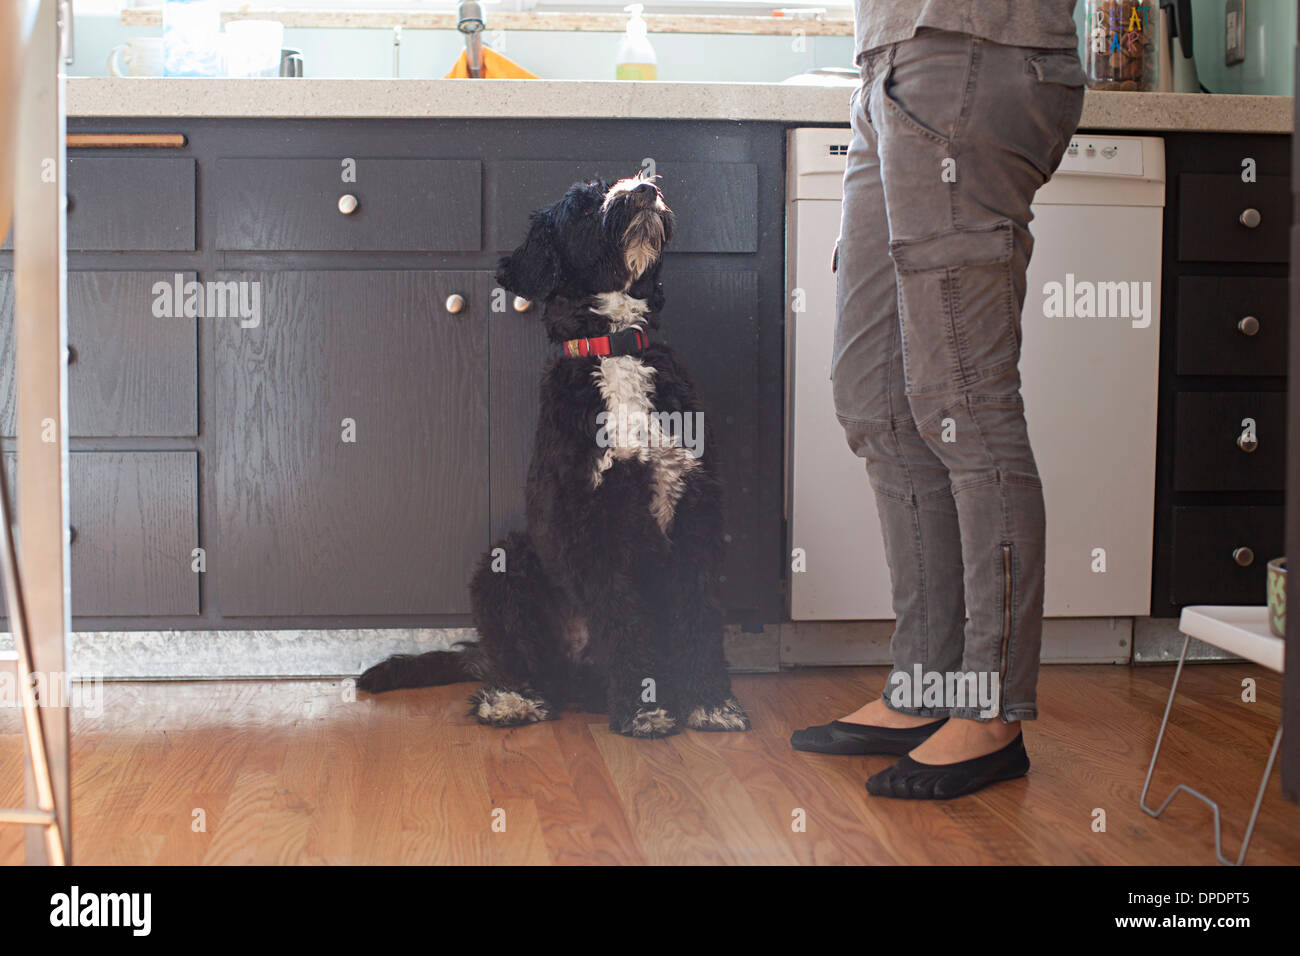 Pet dog looking up at owner in kitchen - Stock Image